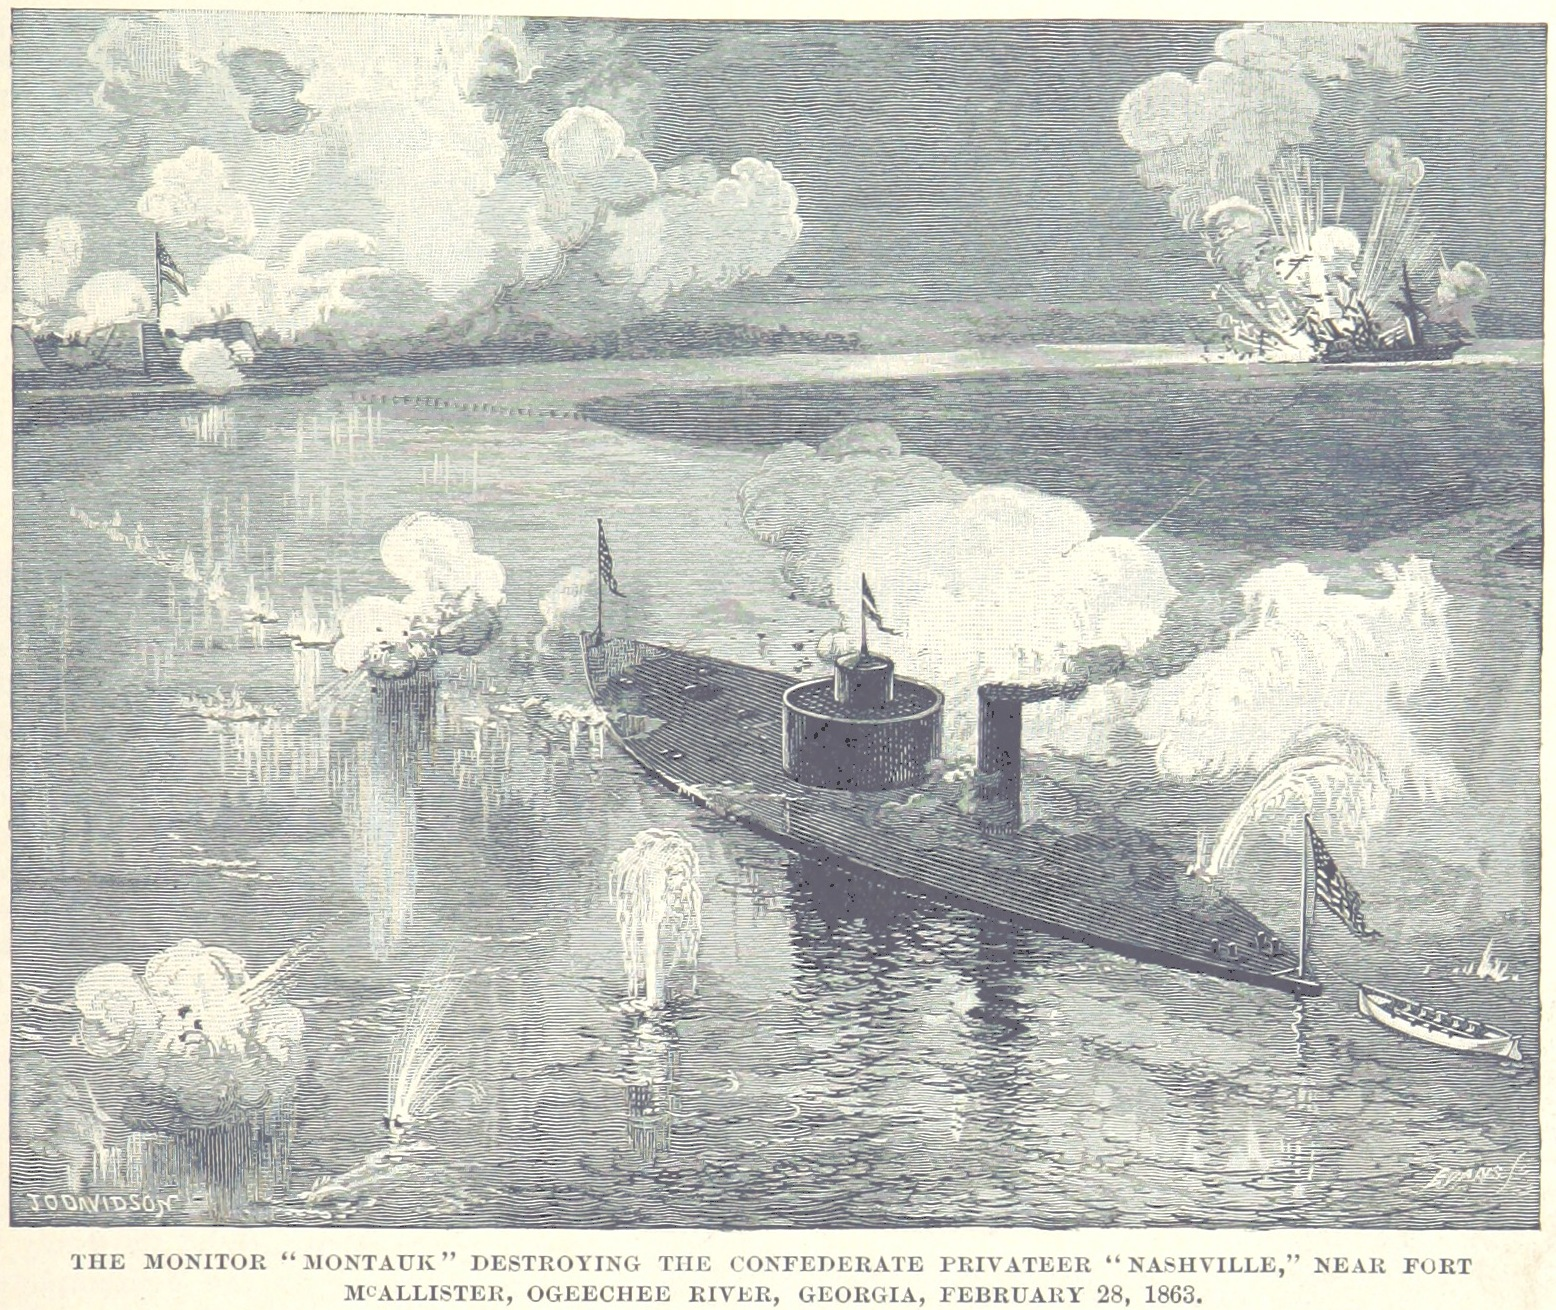 https://upload.wikimedia.org/wikipedia/commons/e/e0/USS_Montauk_destroys_CSS_Nashville.jpg